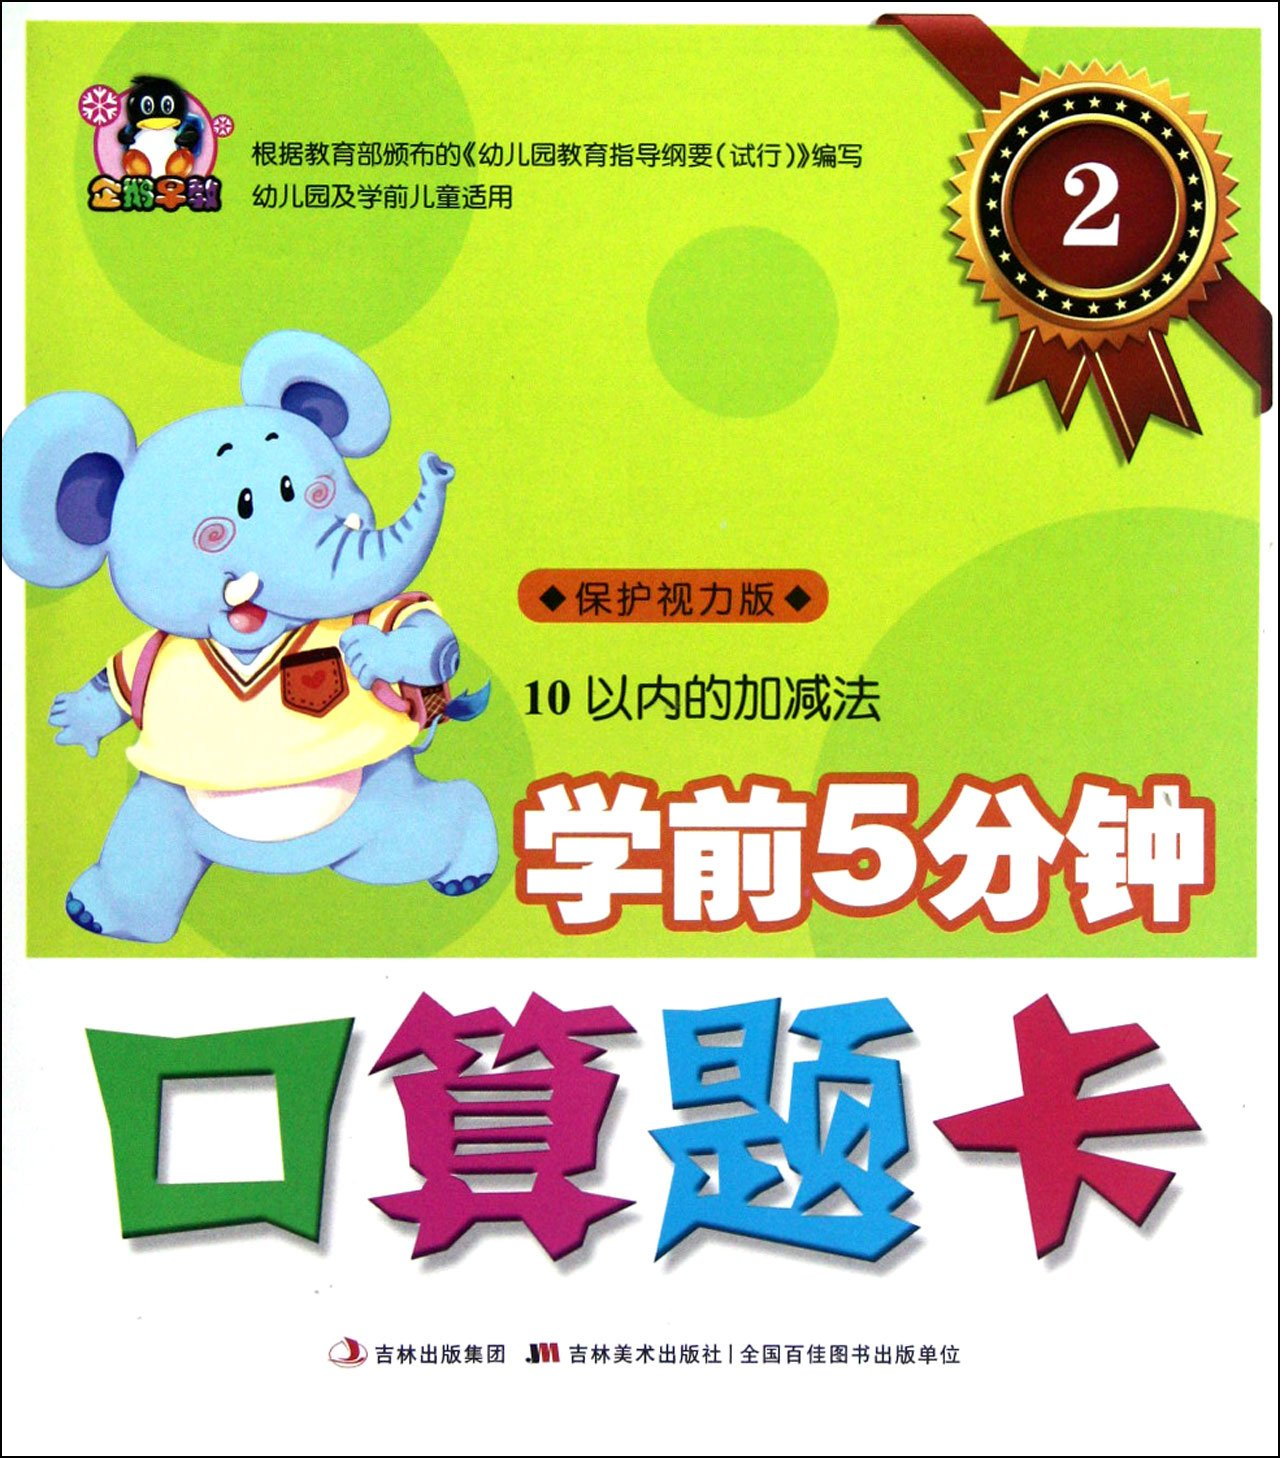 Addition and Subtraction Within 10 (Eyesight Protection Edition for Kindergarten and Preschool Education) Five-Minute Oral Arithmetic Card for Preschool Education (Chinese Edition) ebook